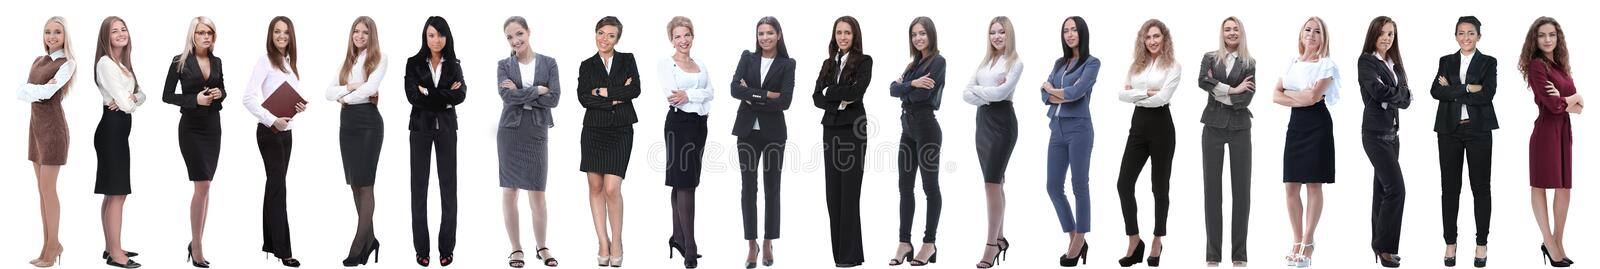 Group of successful young businesswoman standing in a row. Isolated on white background royalty free stock photography